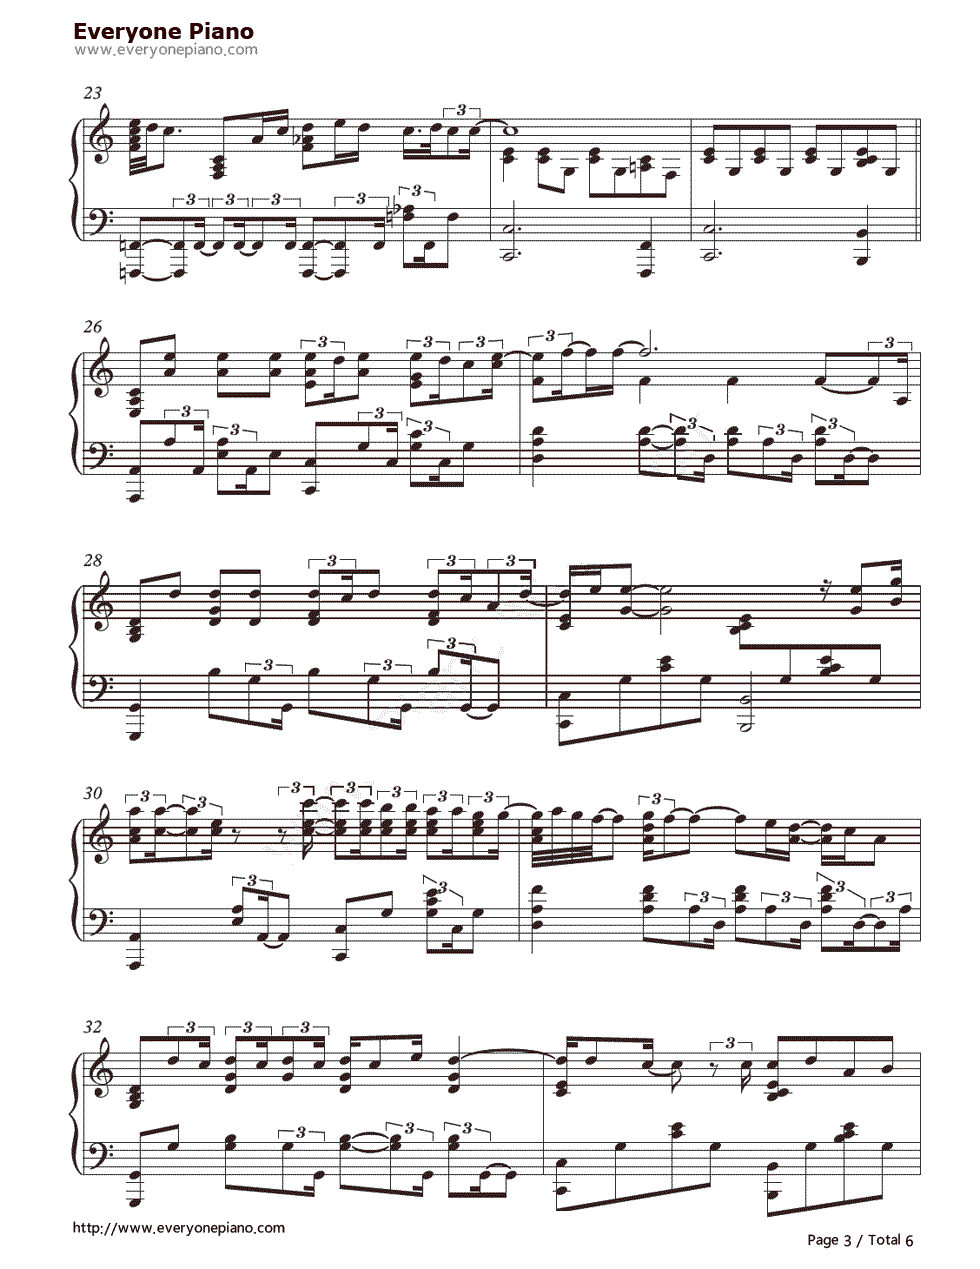 When I Was Your Man-Bruno Mars Stave Preview 3-Free Piano Sheet Music u0026 Piano Chords